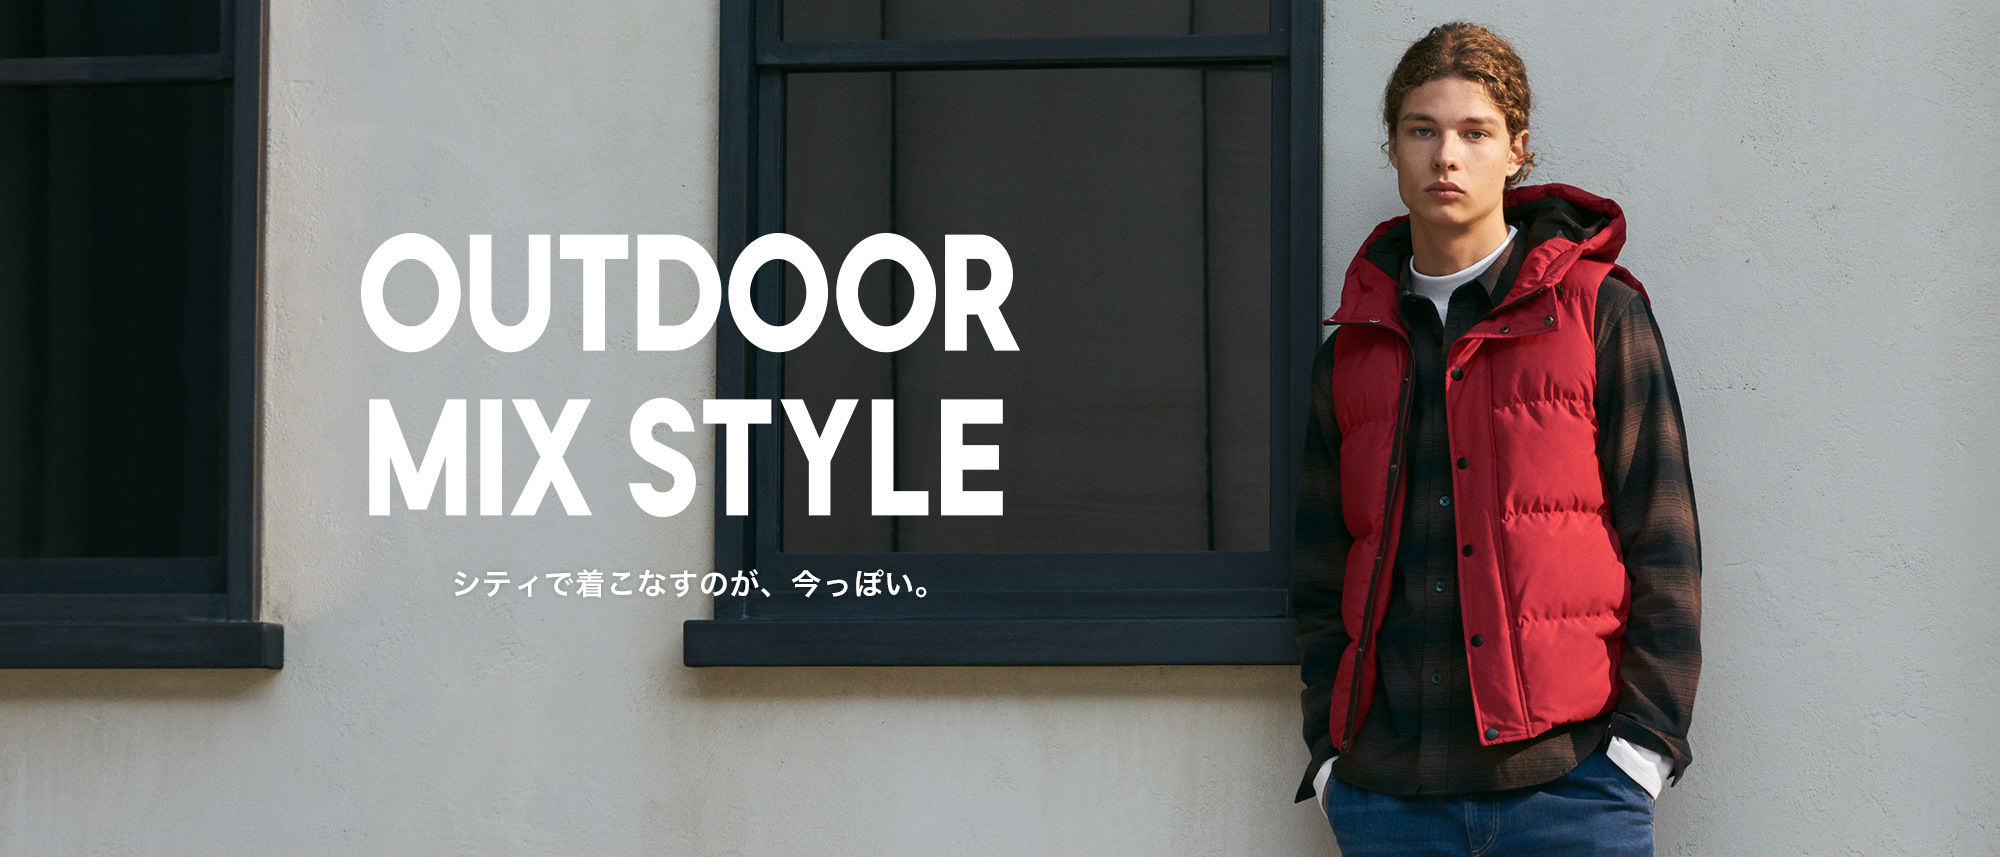 OUTDOOR MIX STYLE